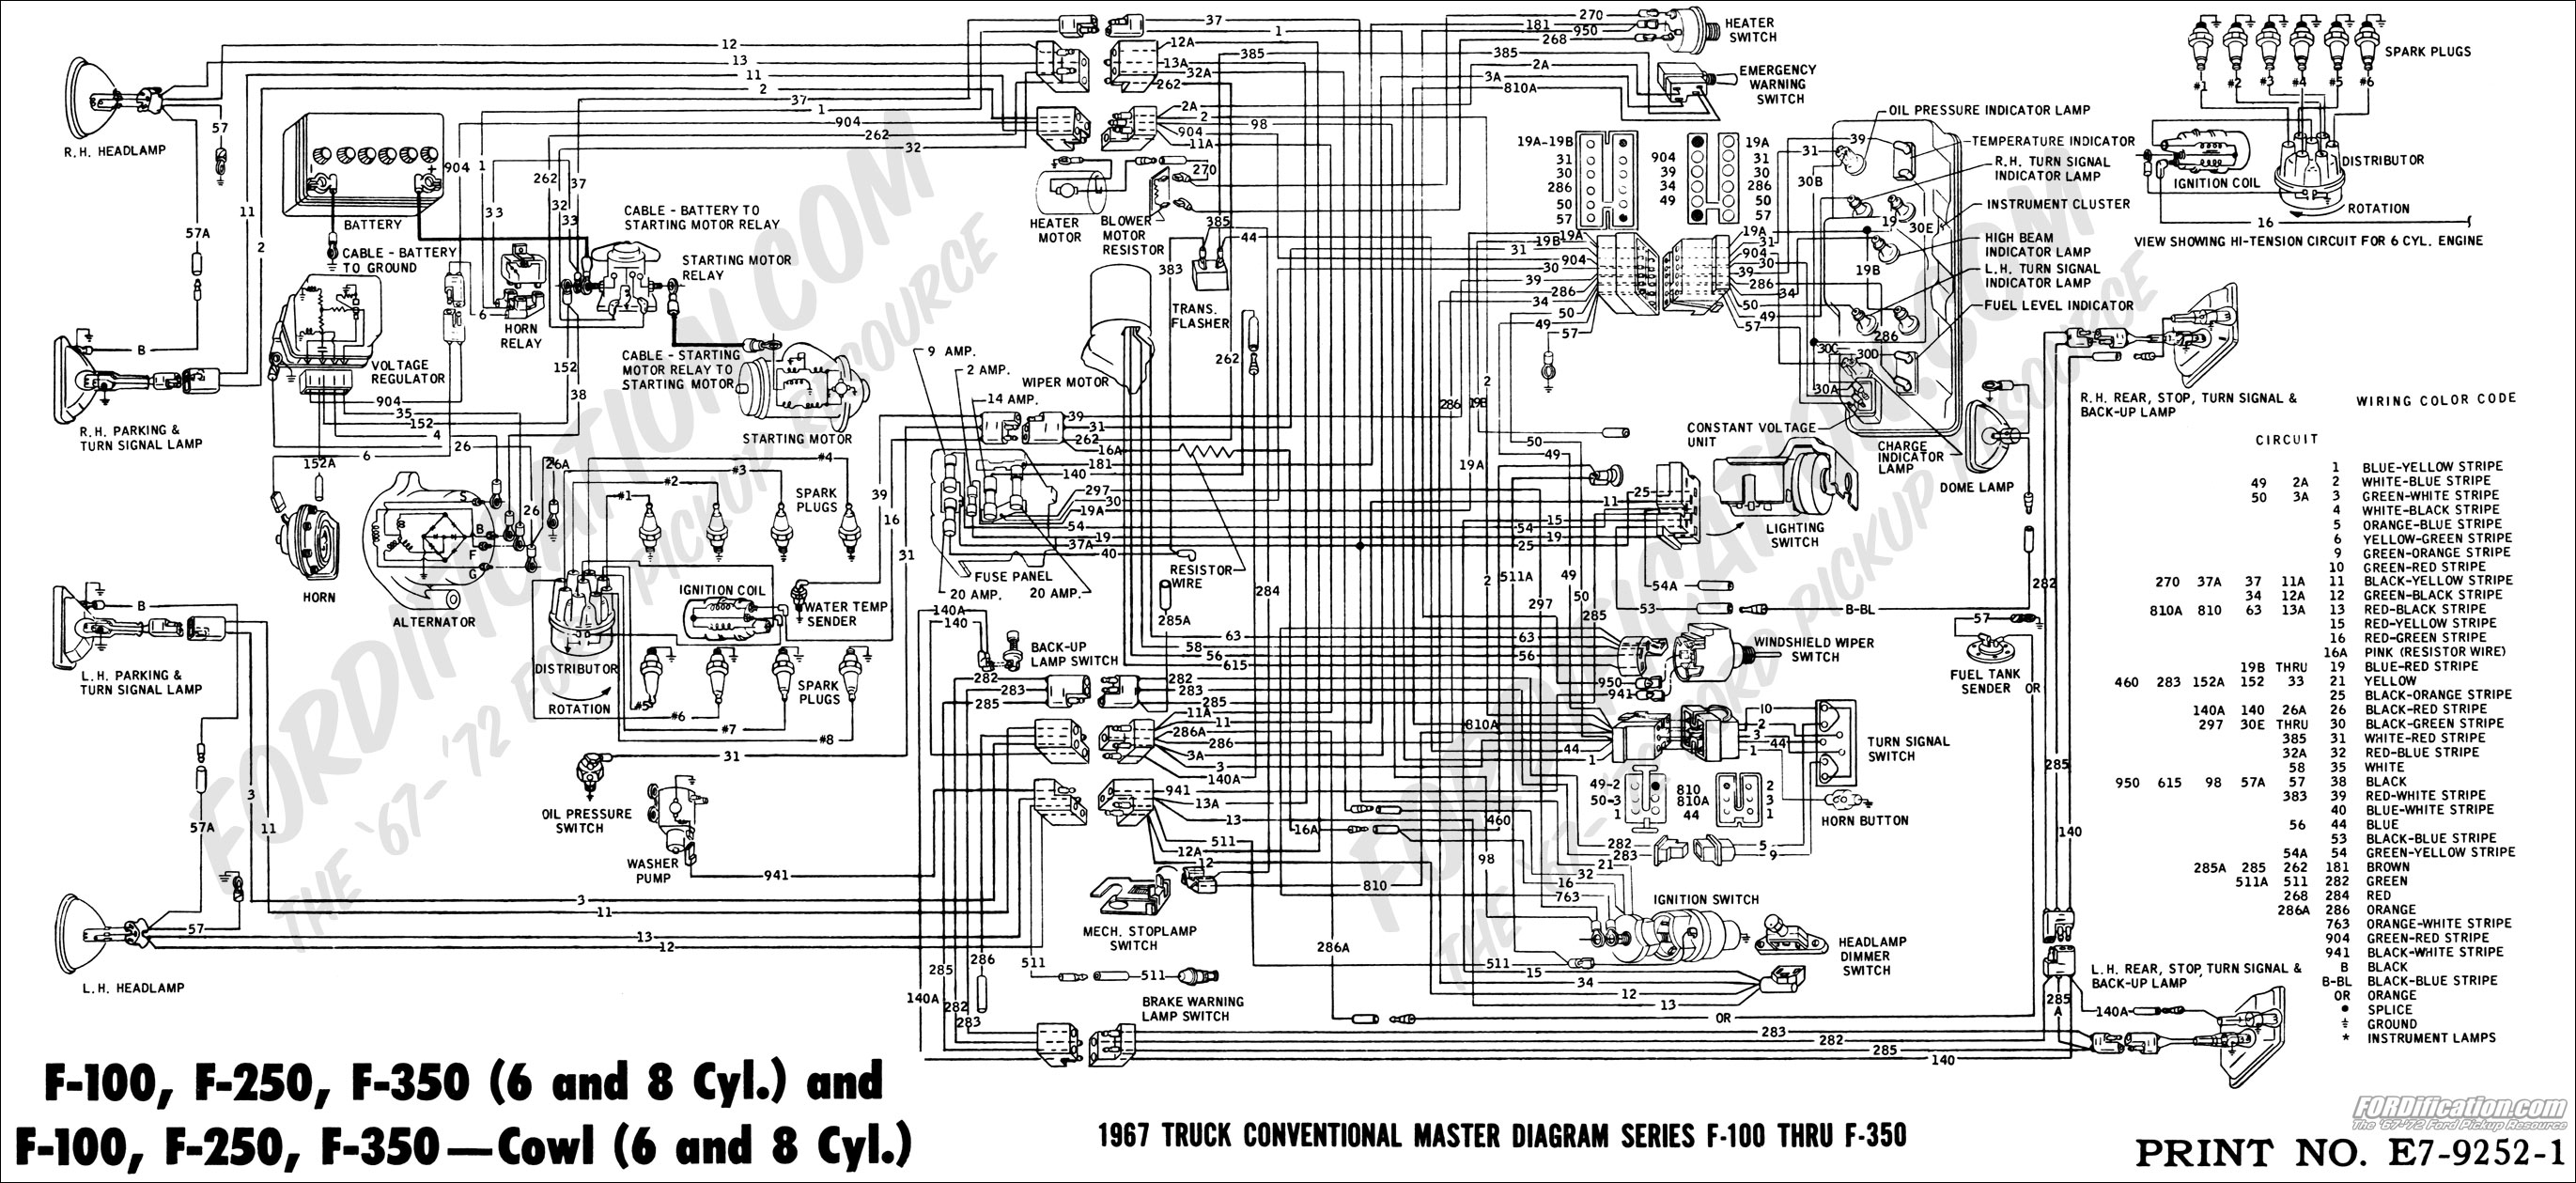 2003 Ford F 250 Wiring Harness Diagram - Block And Schematic Diagrams •